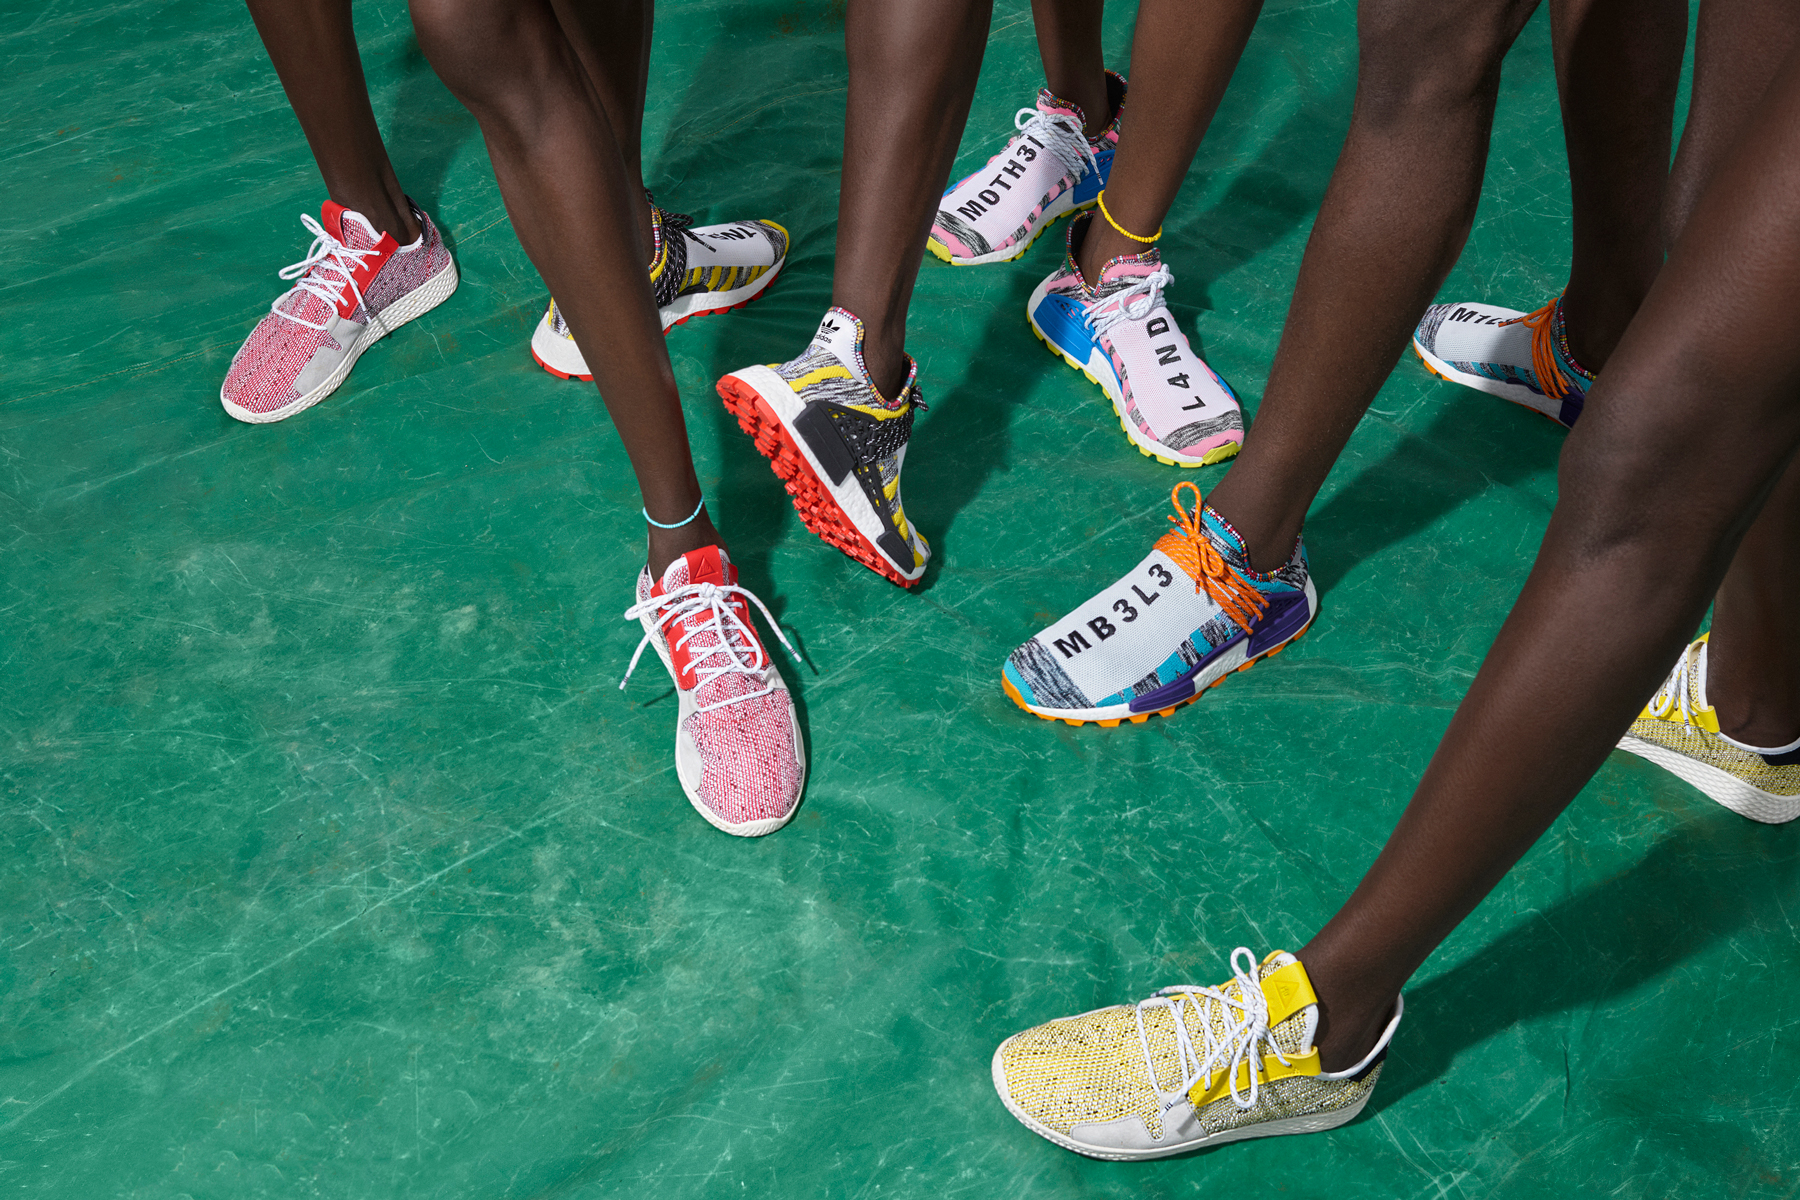 dd820aea37303 pharrell williams adidas solar hu collection august 2018 originals hu tennis  v2 nmd footwear